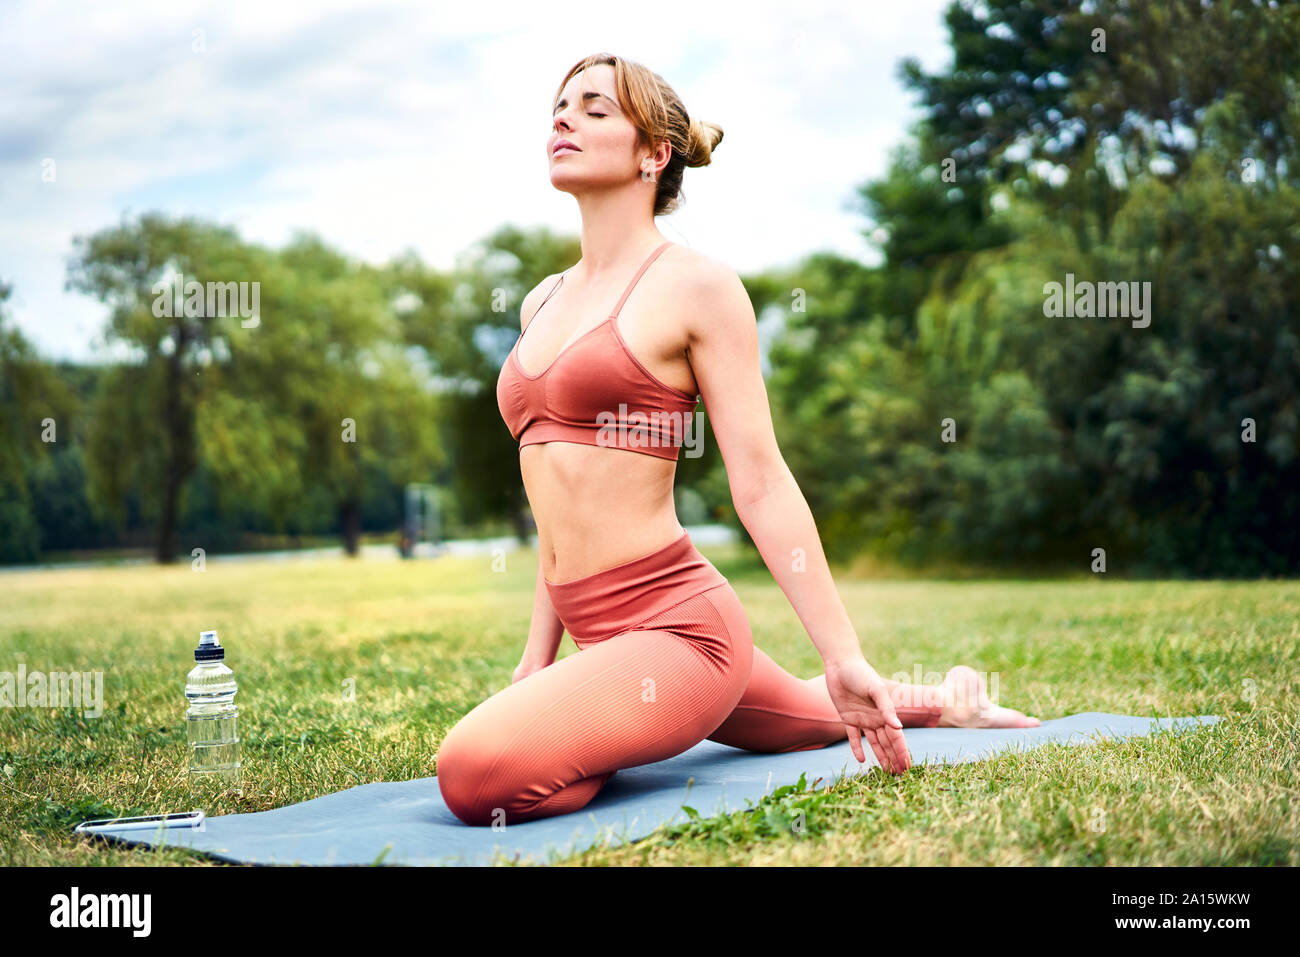 Woman practicing yoga in park Stock Photo